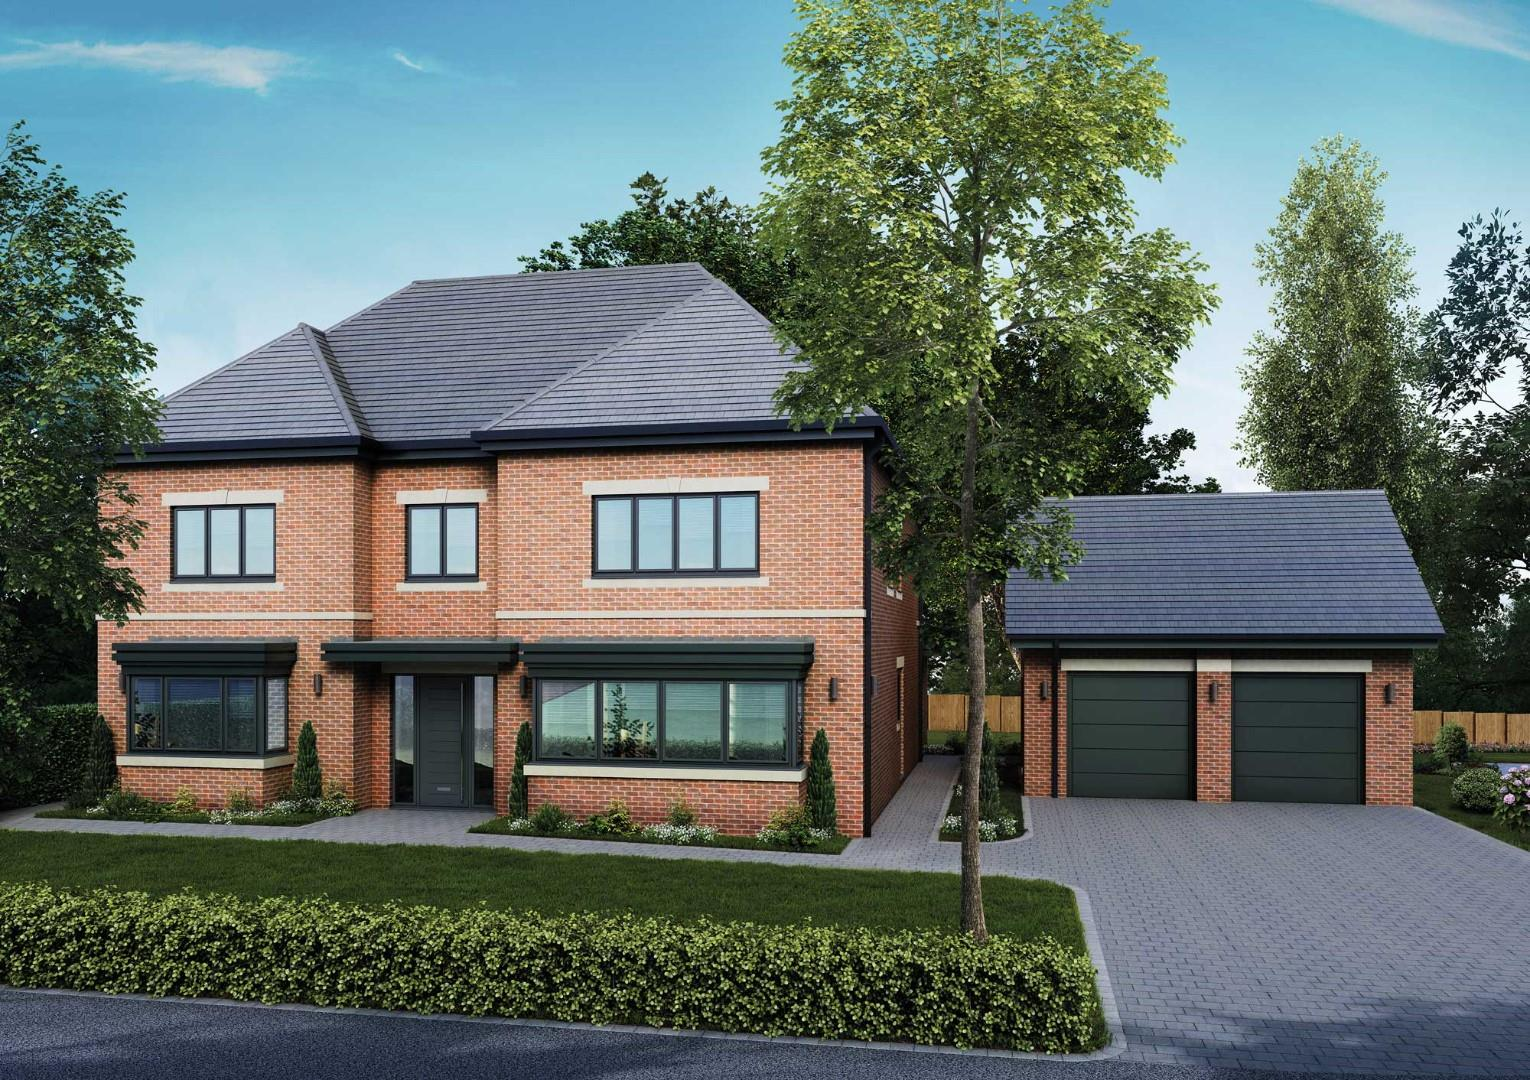 Plot 1, Cawsand House, Helen's Gate, Plymouth Road, Barnt Green, B45 8JE